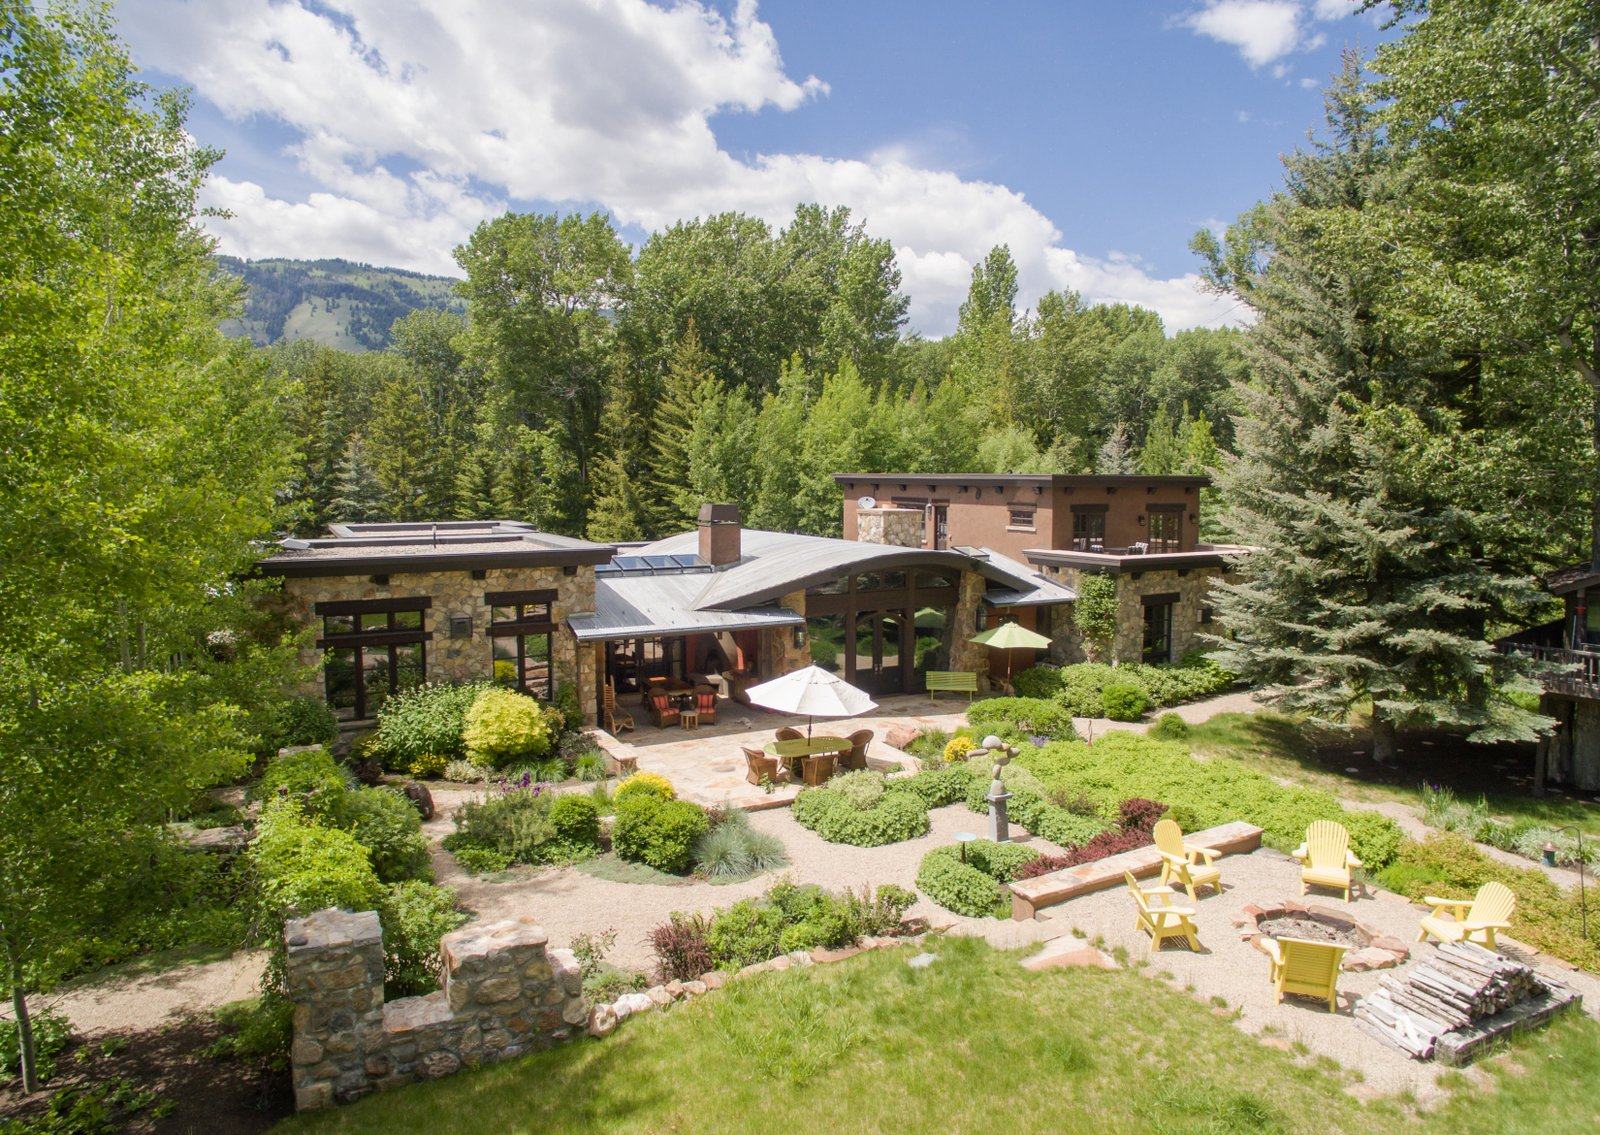 Maison unifamiliale pour l Vente à Old World Craftsmanship Meets Contemporary Mountain Living 102 Sutton Place Ketchum, Idaho, 83340 États-Unis